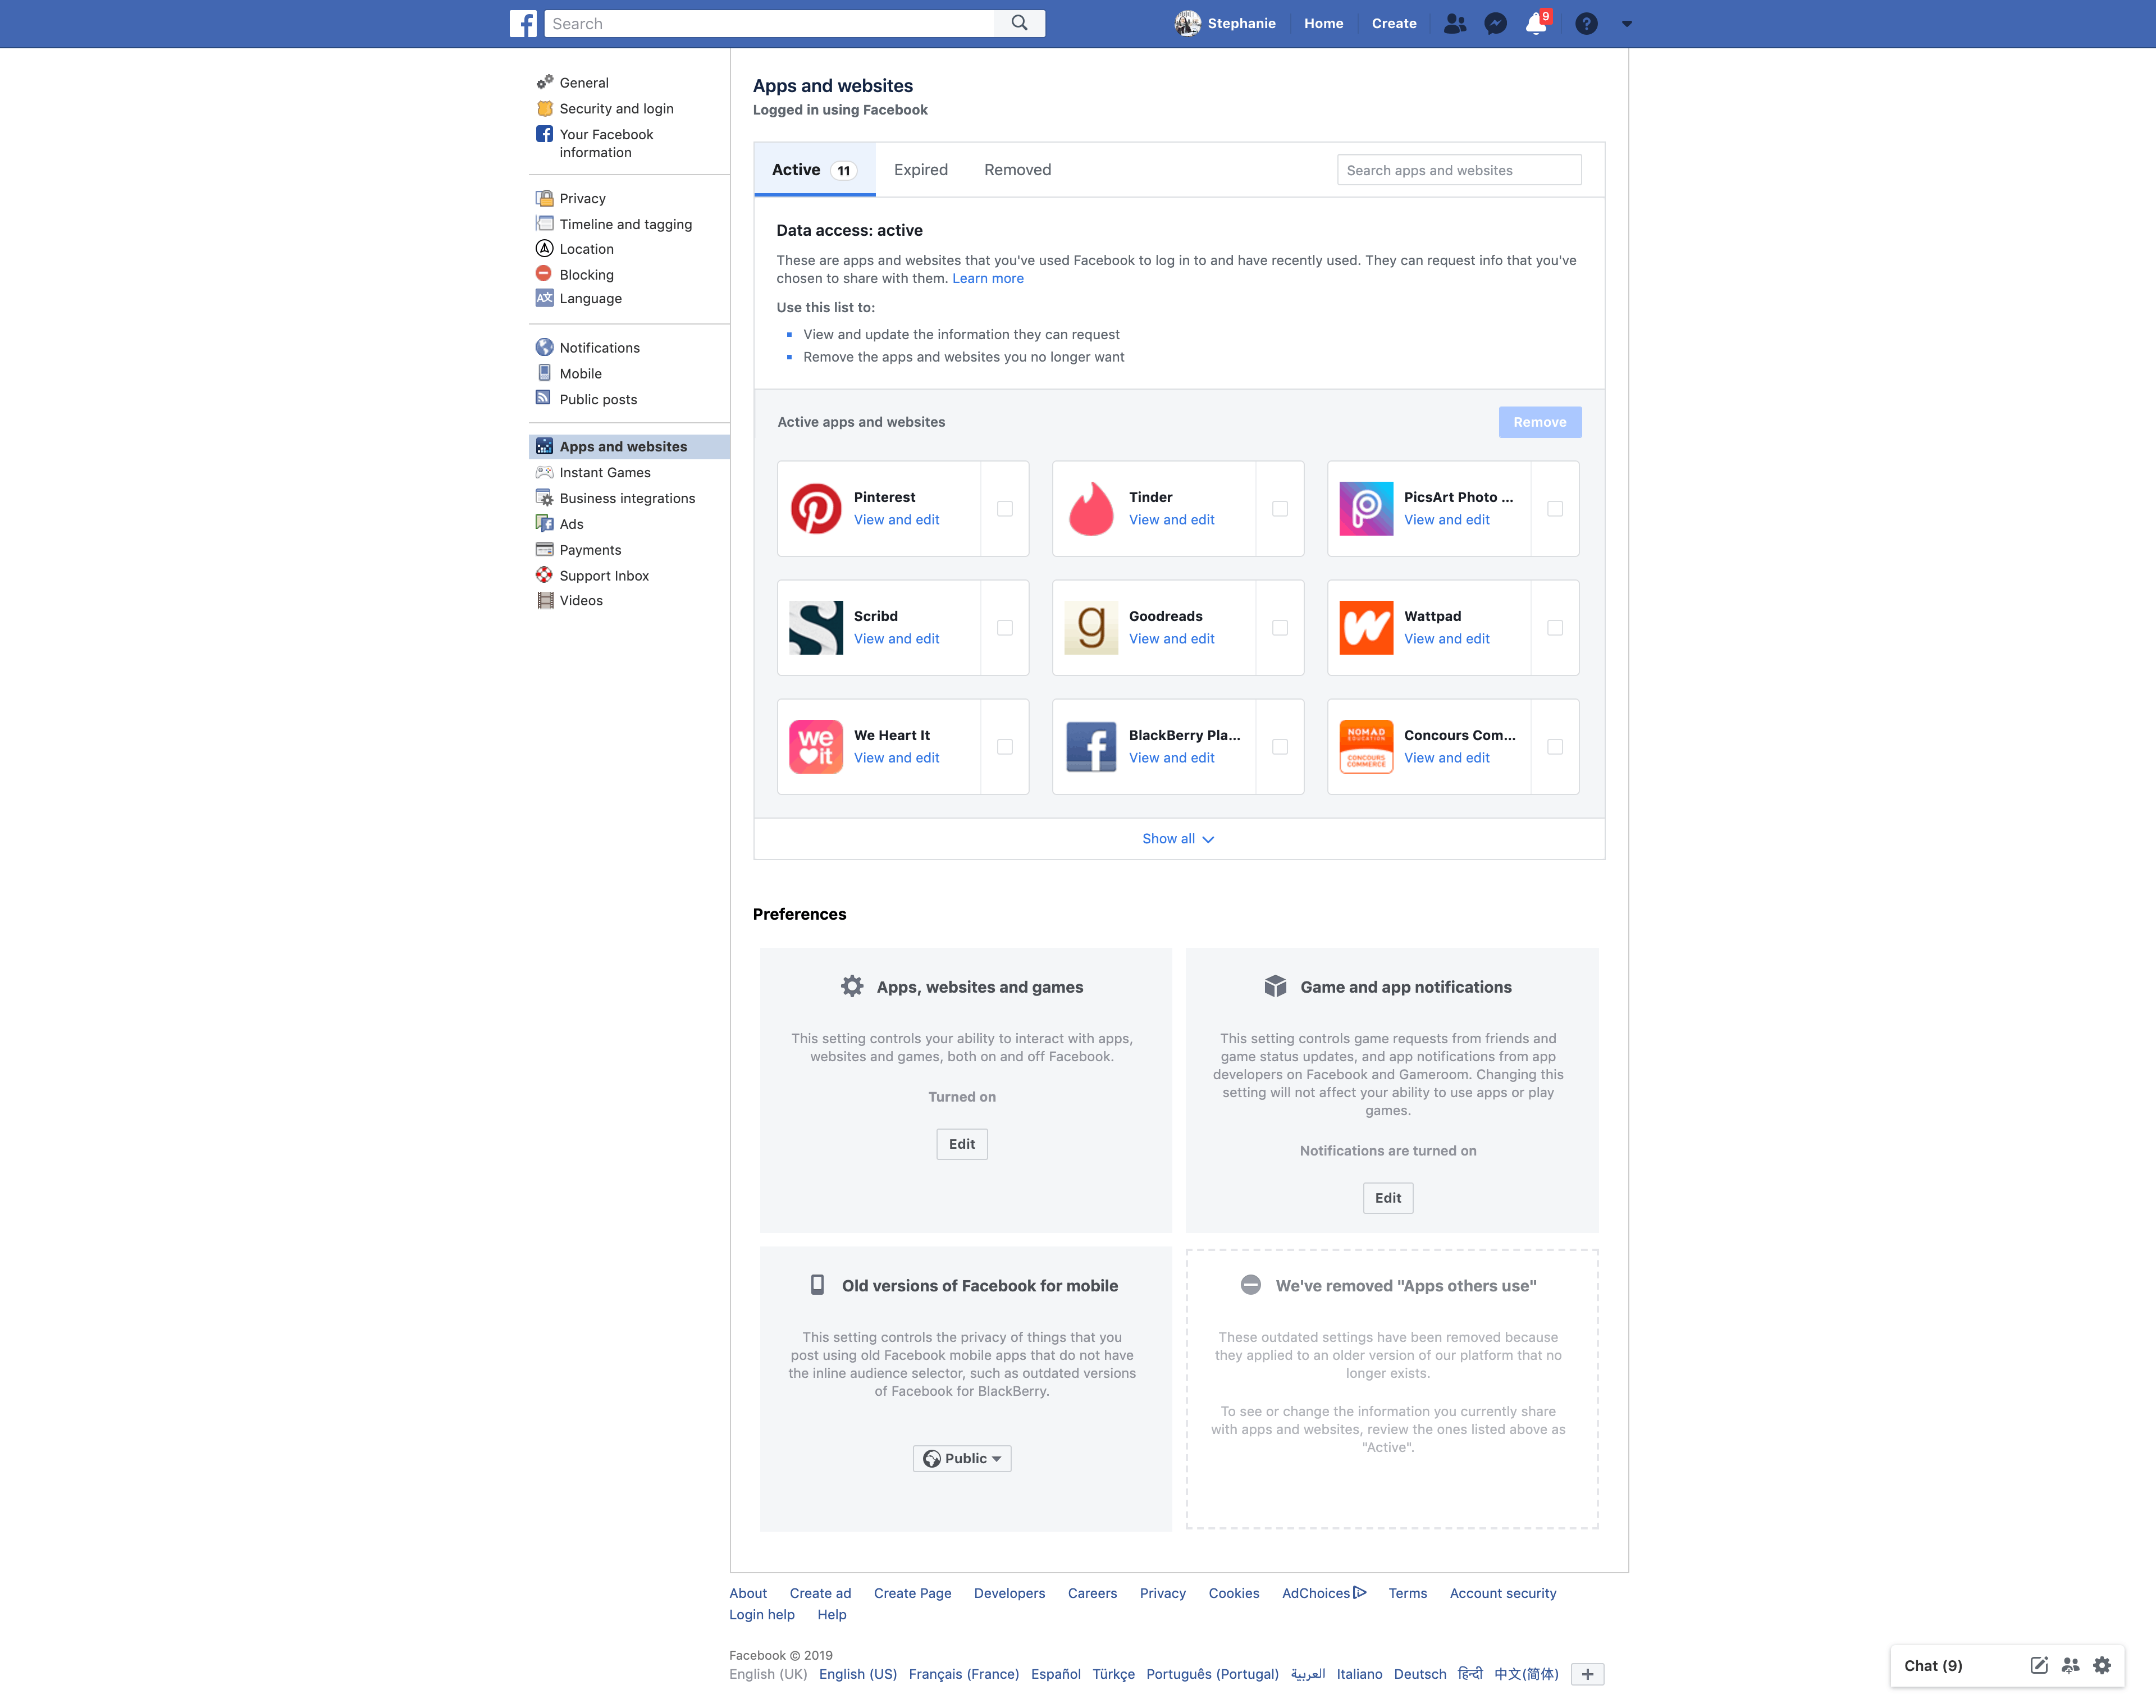 Apps and Websites Settings by Facebook Settings  - UI Garage - The database of UI